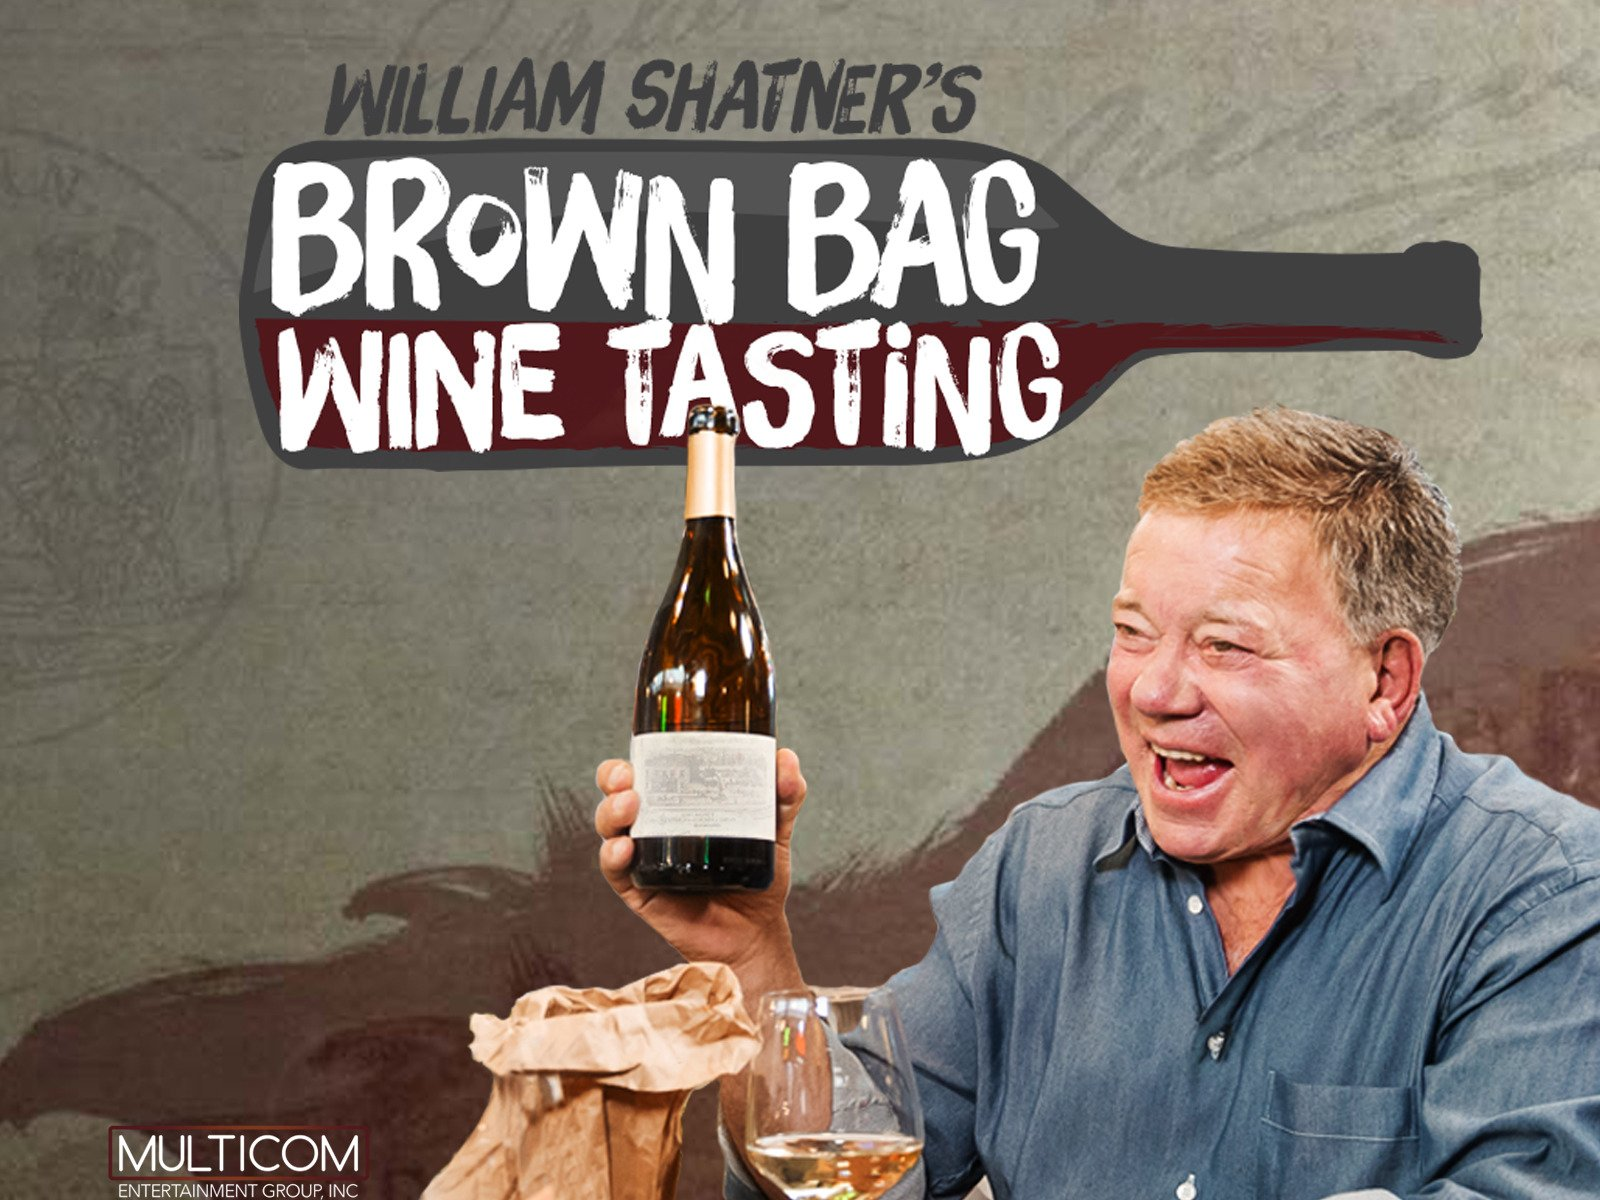 William Shatner's Brown Bag Tasting